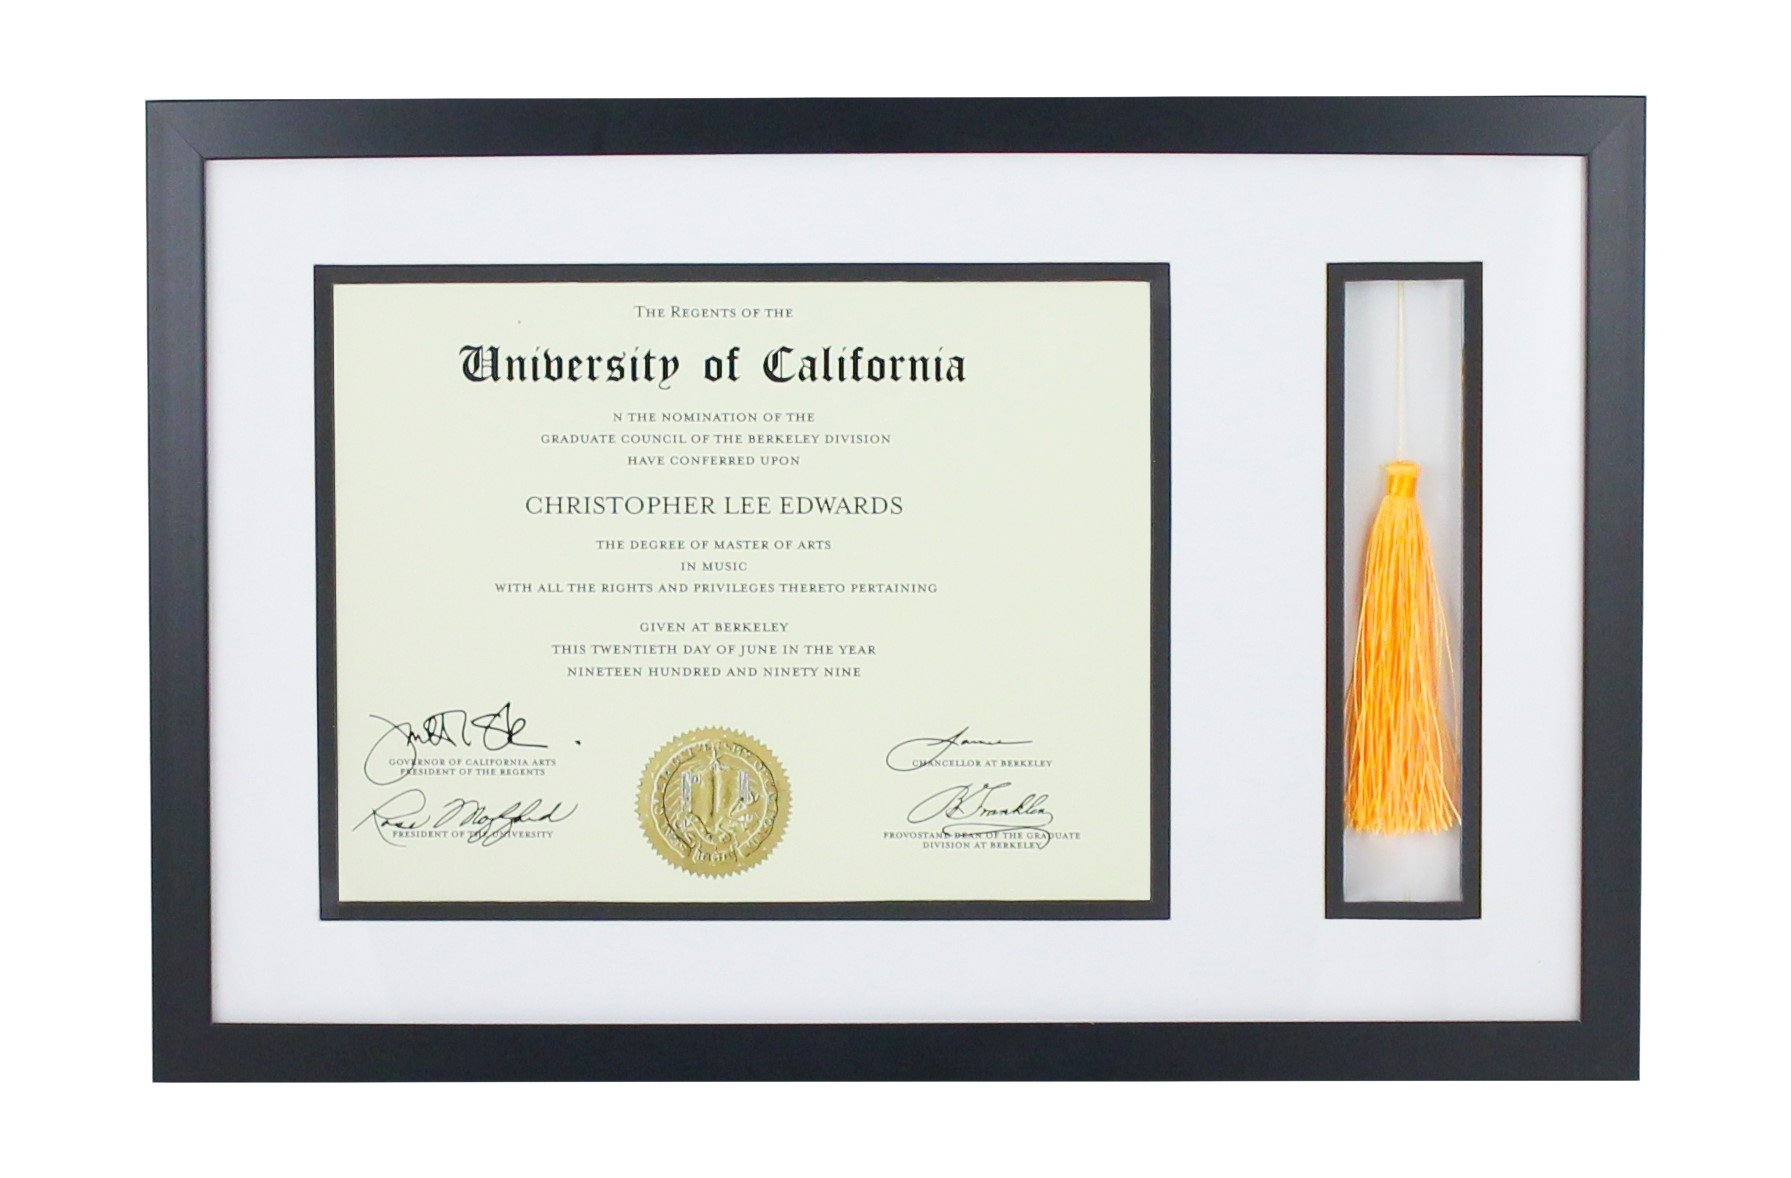 Document Frame With Tassel Holder - Made to Display Certificates 8 ½ x 11 Inch Opening to 11 x 18 Inch Frame- Document Frame, Certificate Frame, University Diploma Frame, 11x14 Black Picture Frame